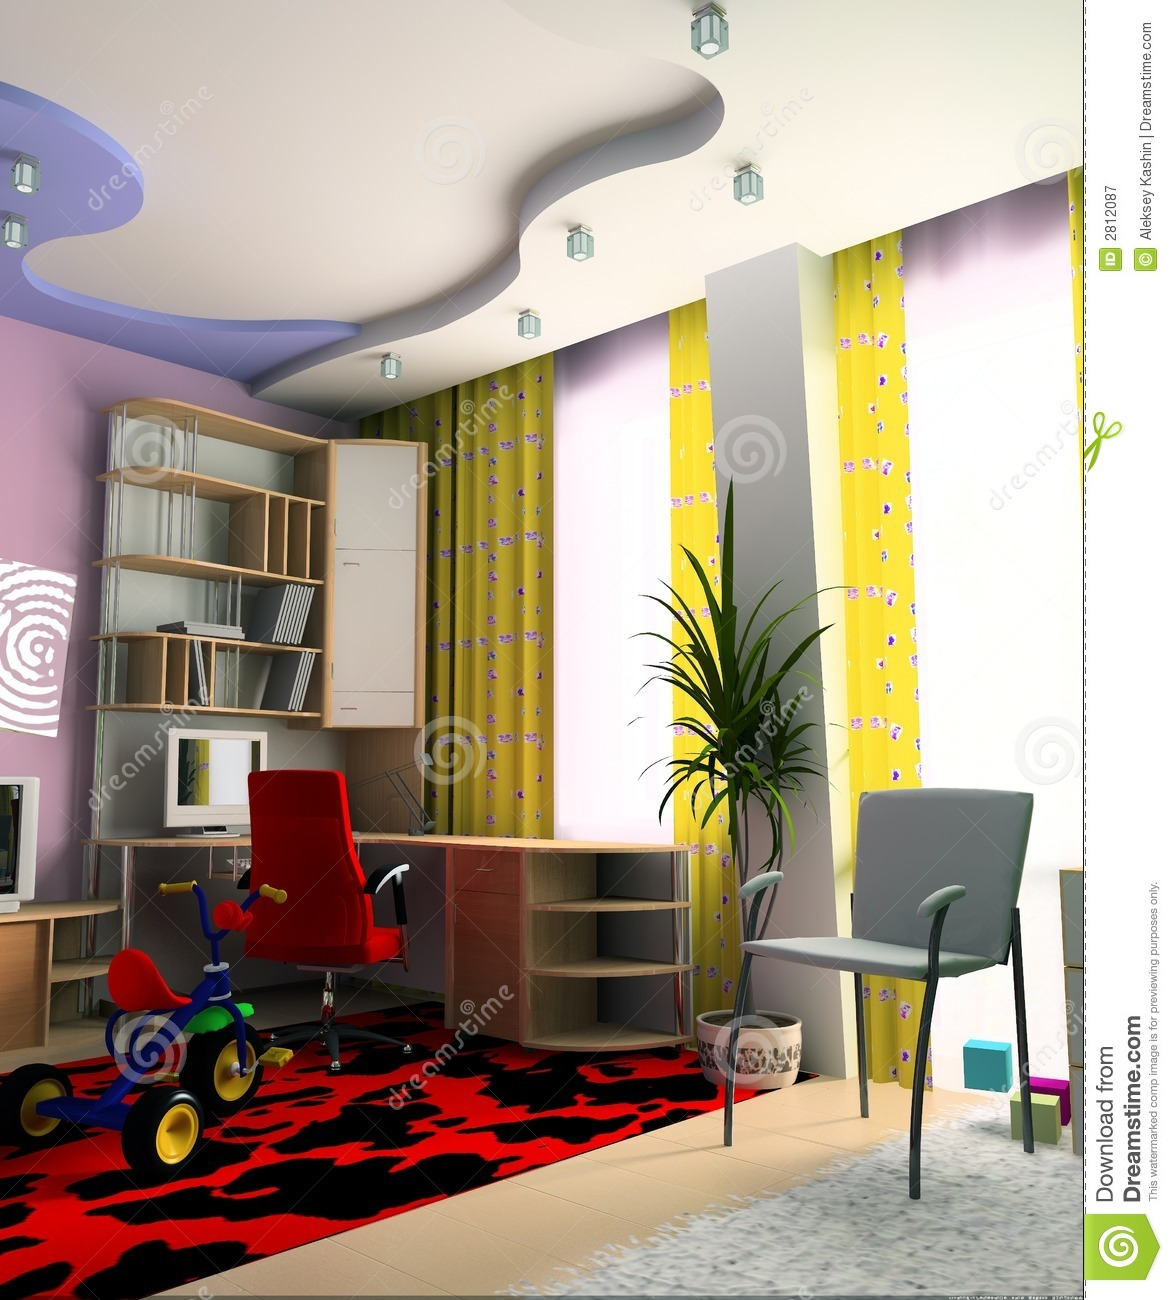 Children 39 S Room Royalty Free Stock Photography Image